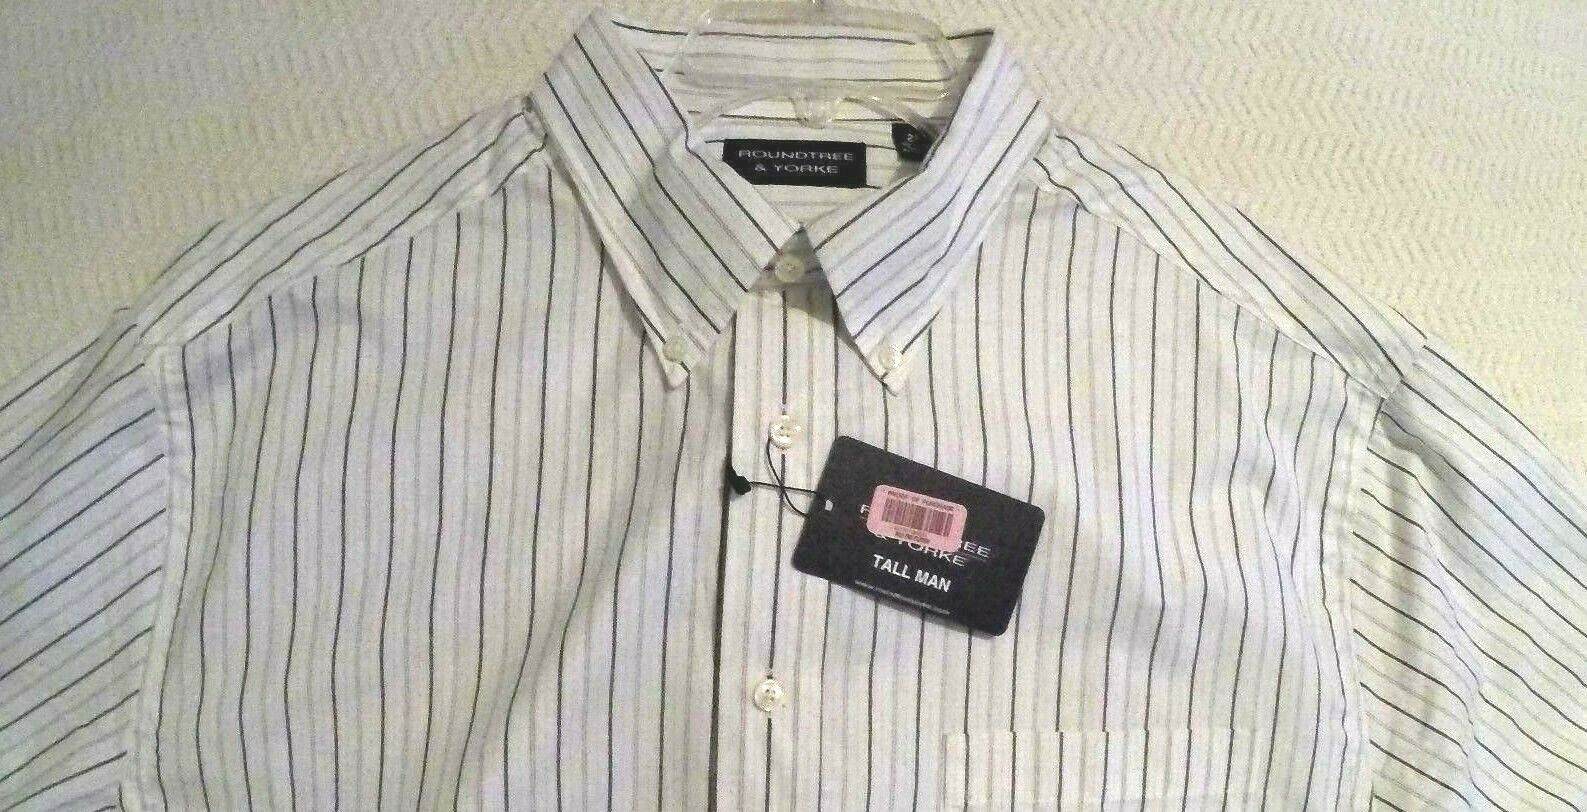 Roundtree /& Yorke White with Blue Striped Color Shirt Sizes 2XT or 4XT TALL MAN